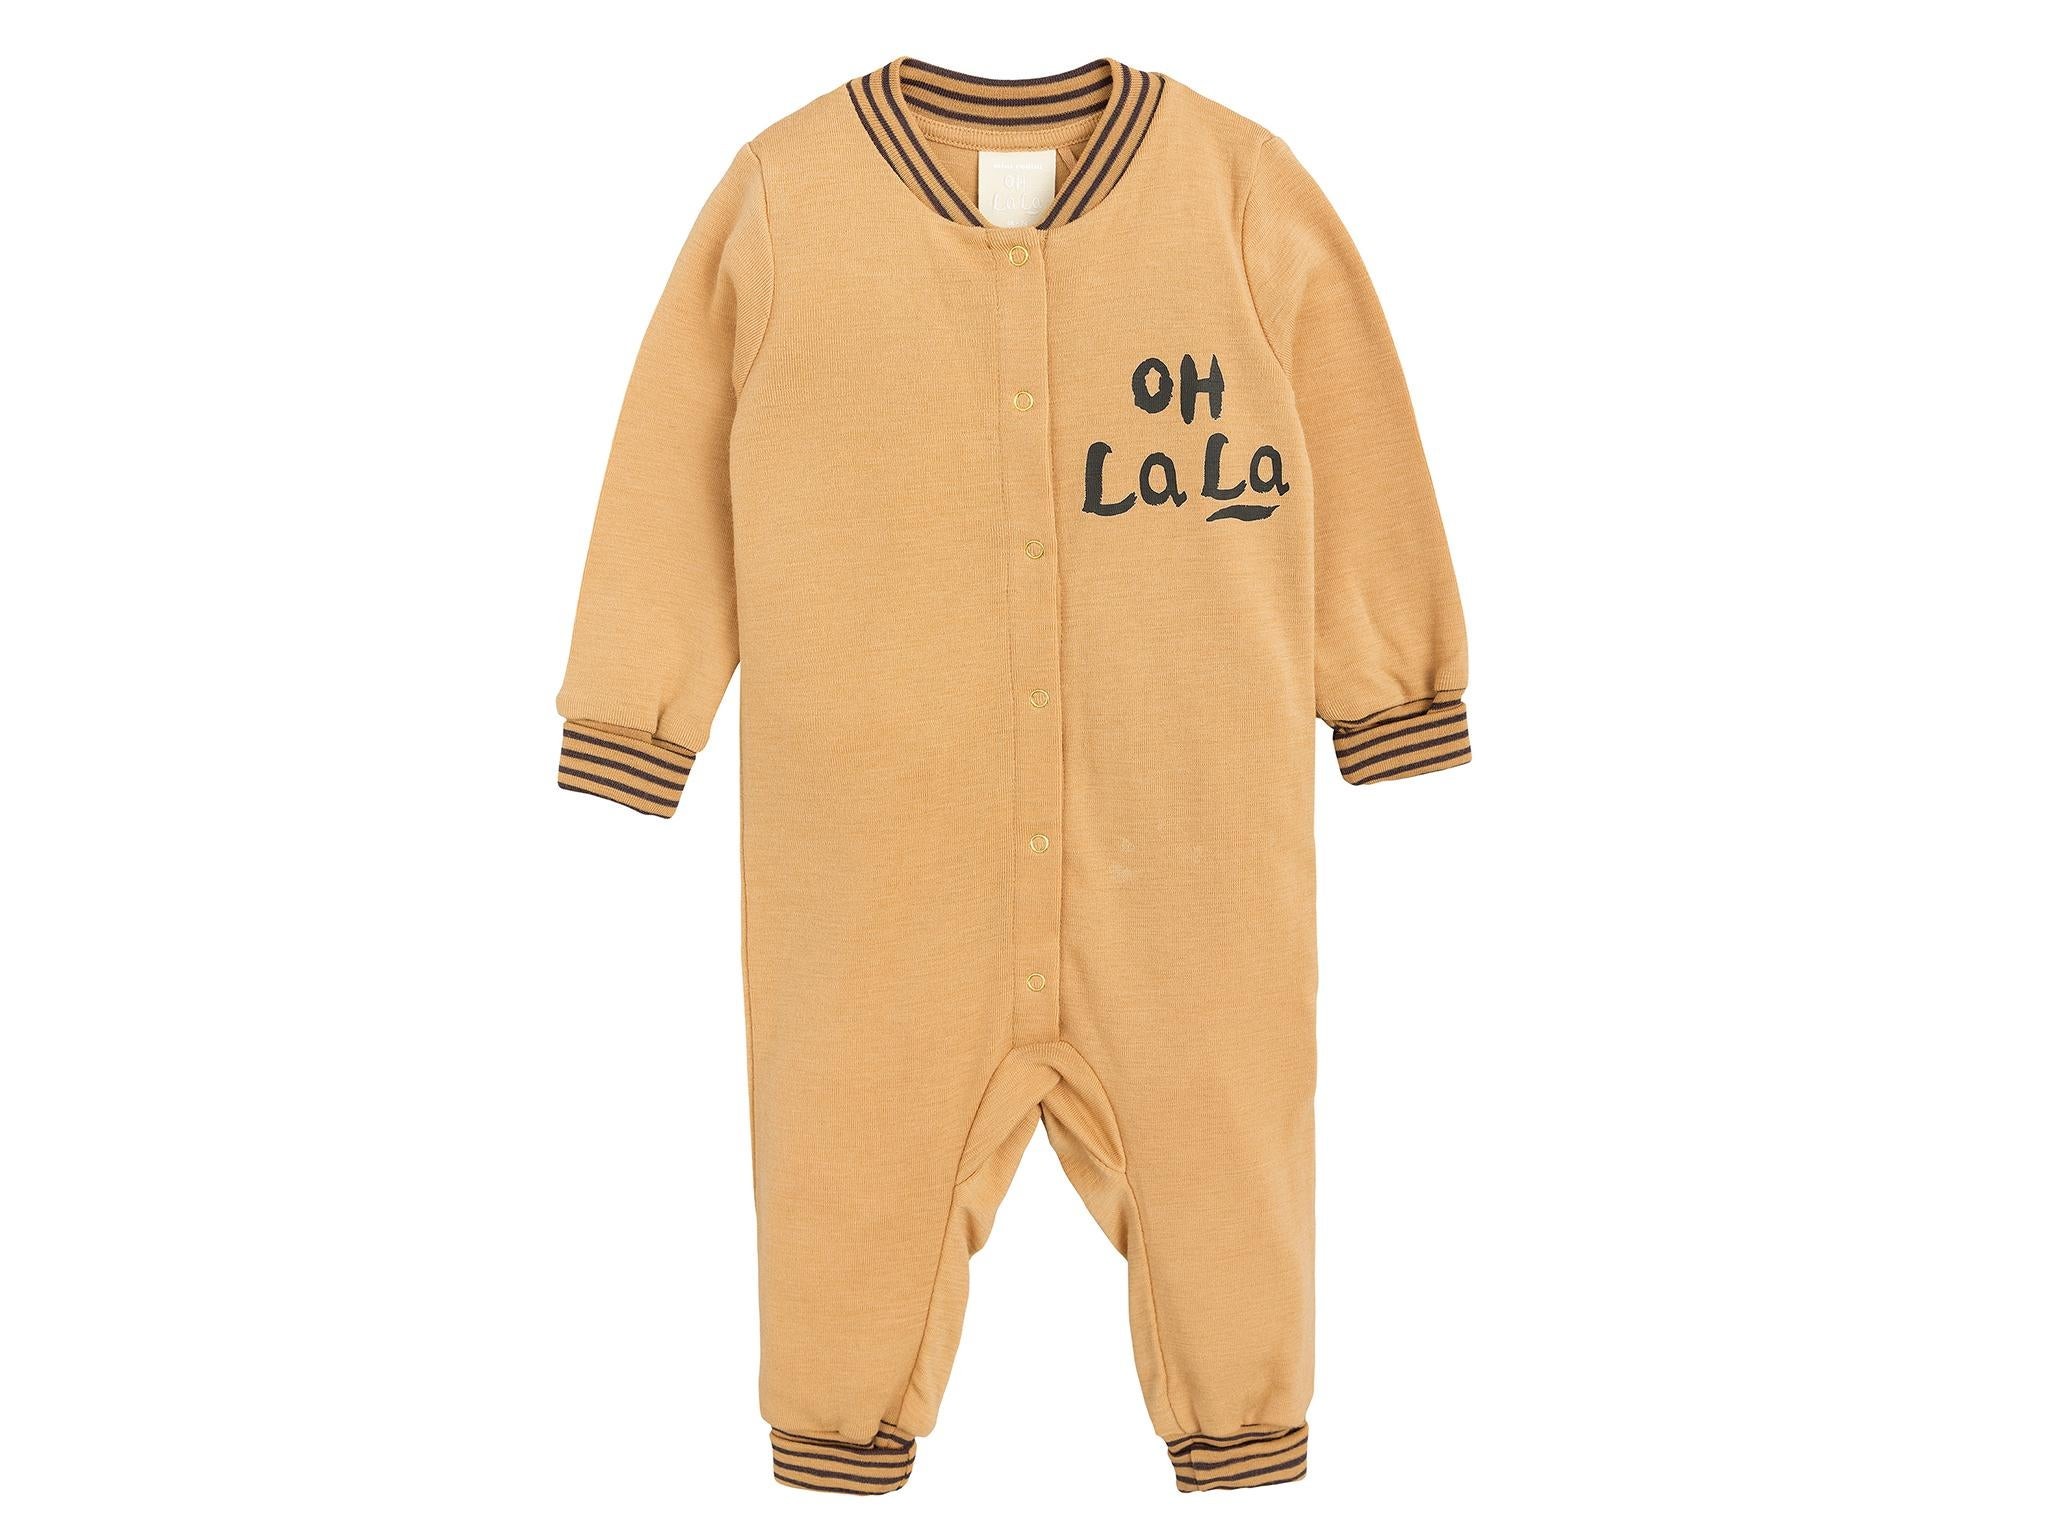 10 best brands for gender-neutral baby clothes  65ed07966